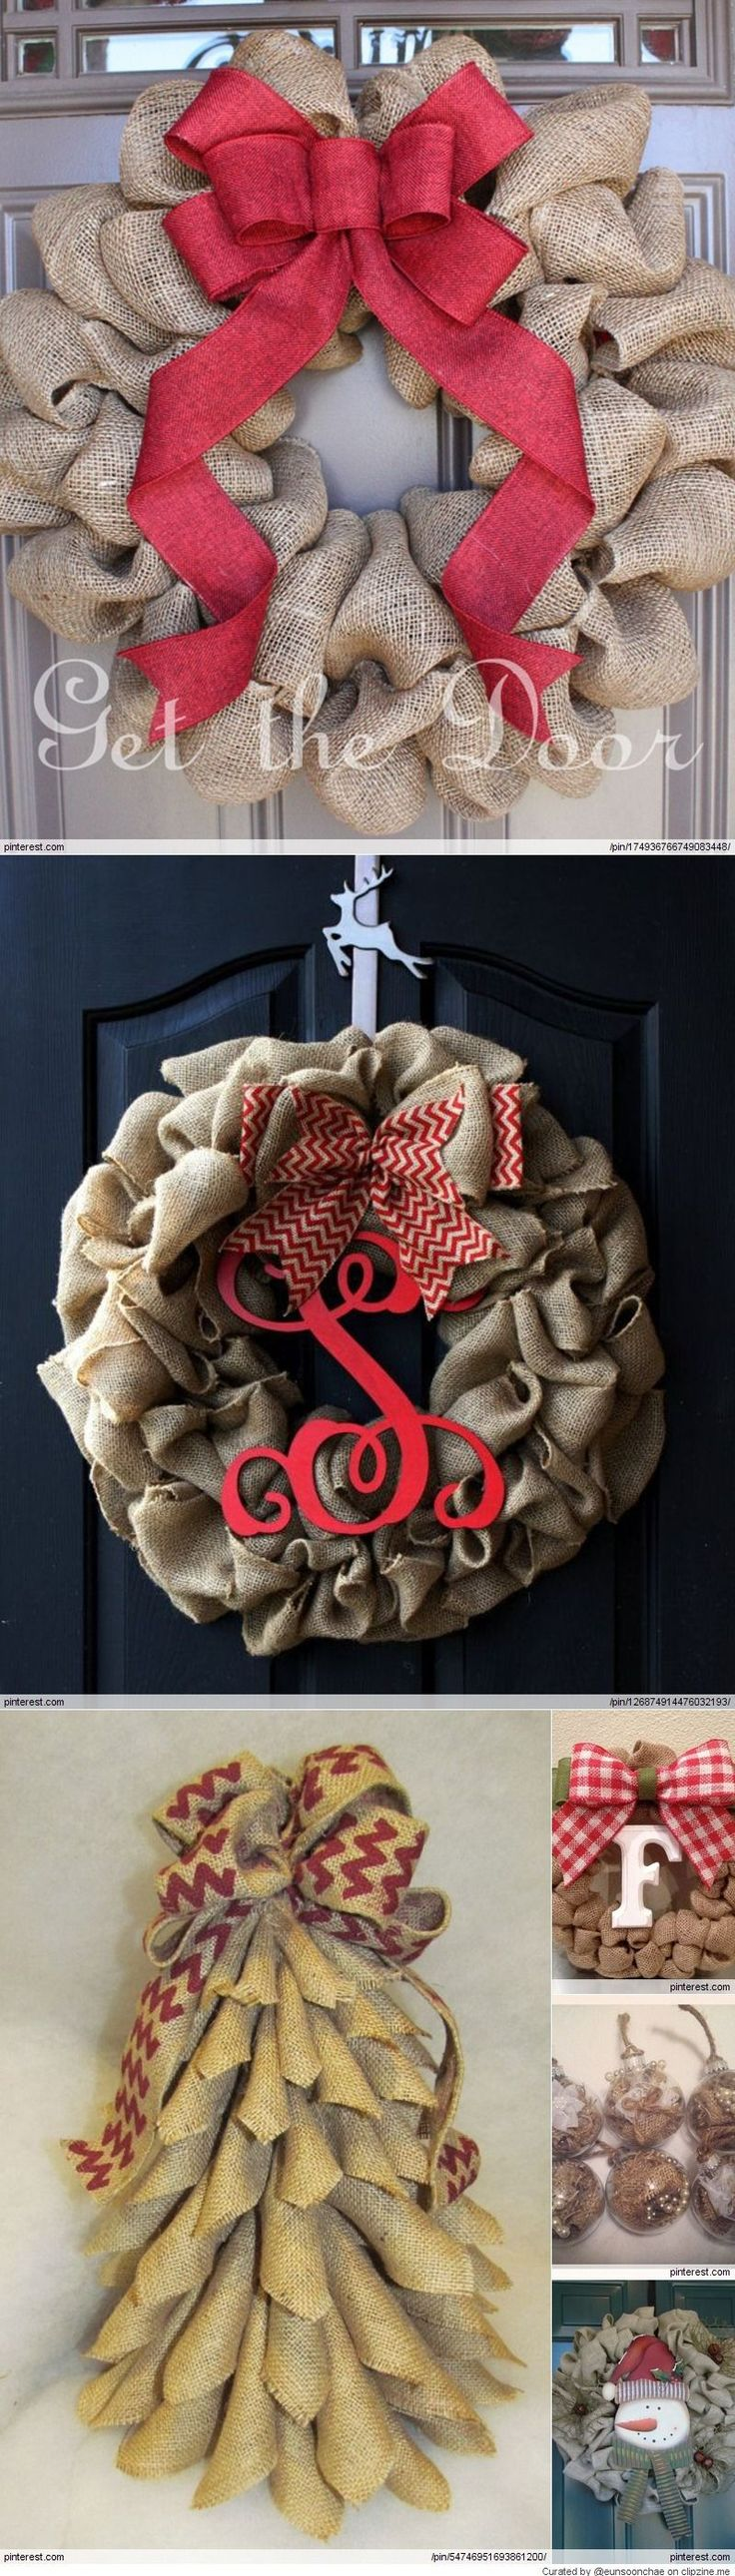 Inspiring 25 Best DIY Burlap Christmas Tree Wall Hanging https://decoratoo.com/2017/10/28/25-best-diy-burlap-christmas-tree-wall-hanging/ It is possible to even earn a wreath entirely from pinecones. For those who want to modify things up from the conventional wreath this calendar year, Iam sharing some creative wreath ideas, found around the internet